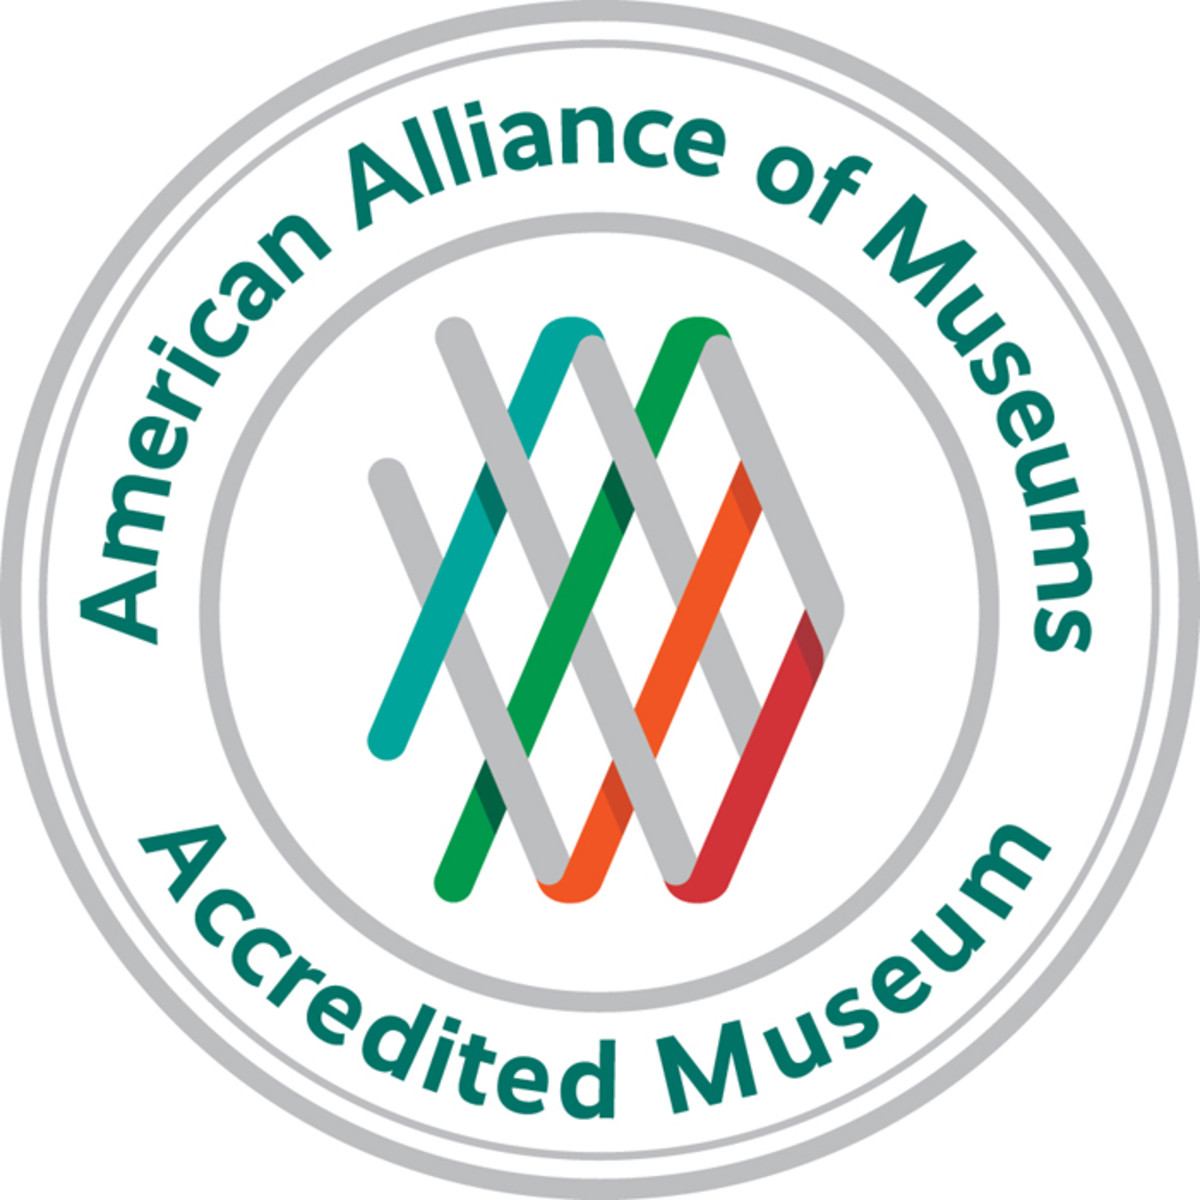 American Alliance of Museums' stamp of approval